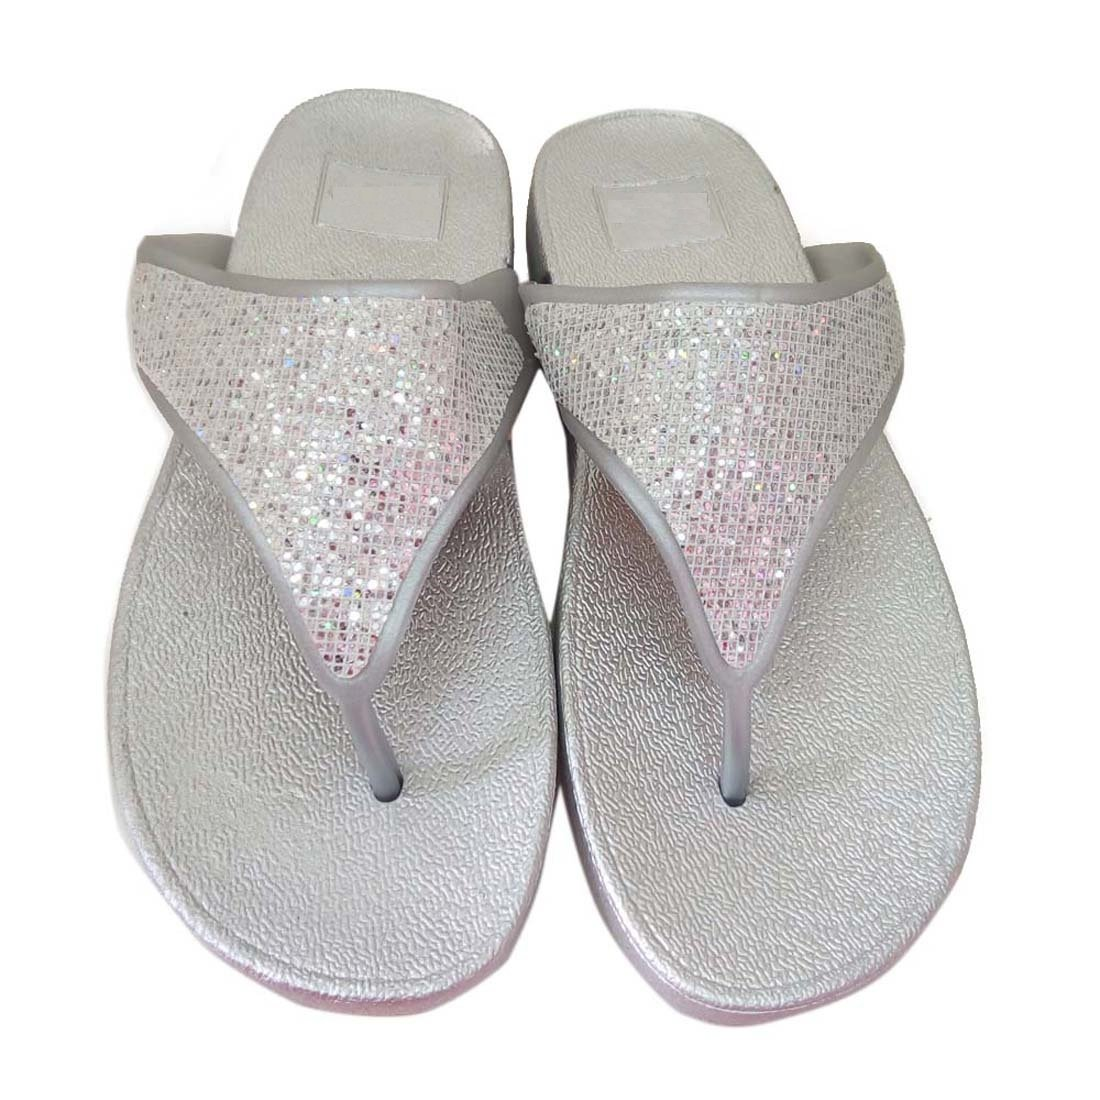 49b879ca75e22 HALO NATION Ladies Designer Slip Silver Sandals for Girls  Buy Online at  Low Prices in India - Amazon.in